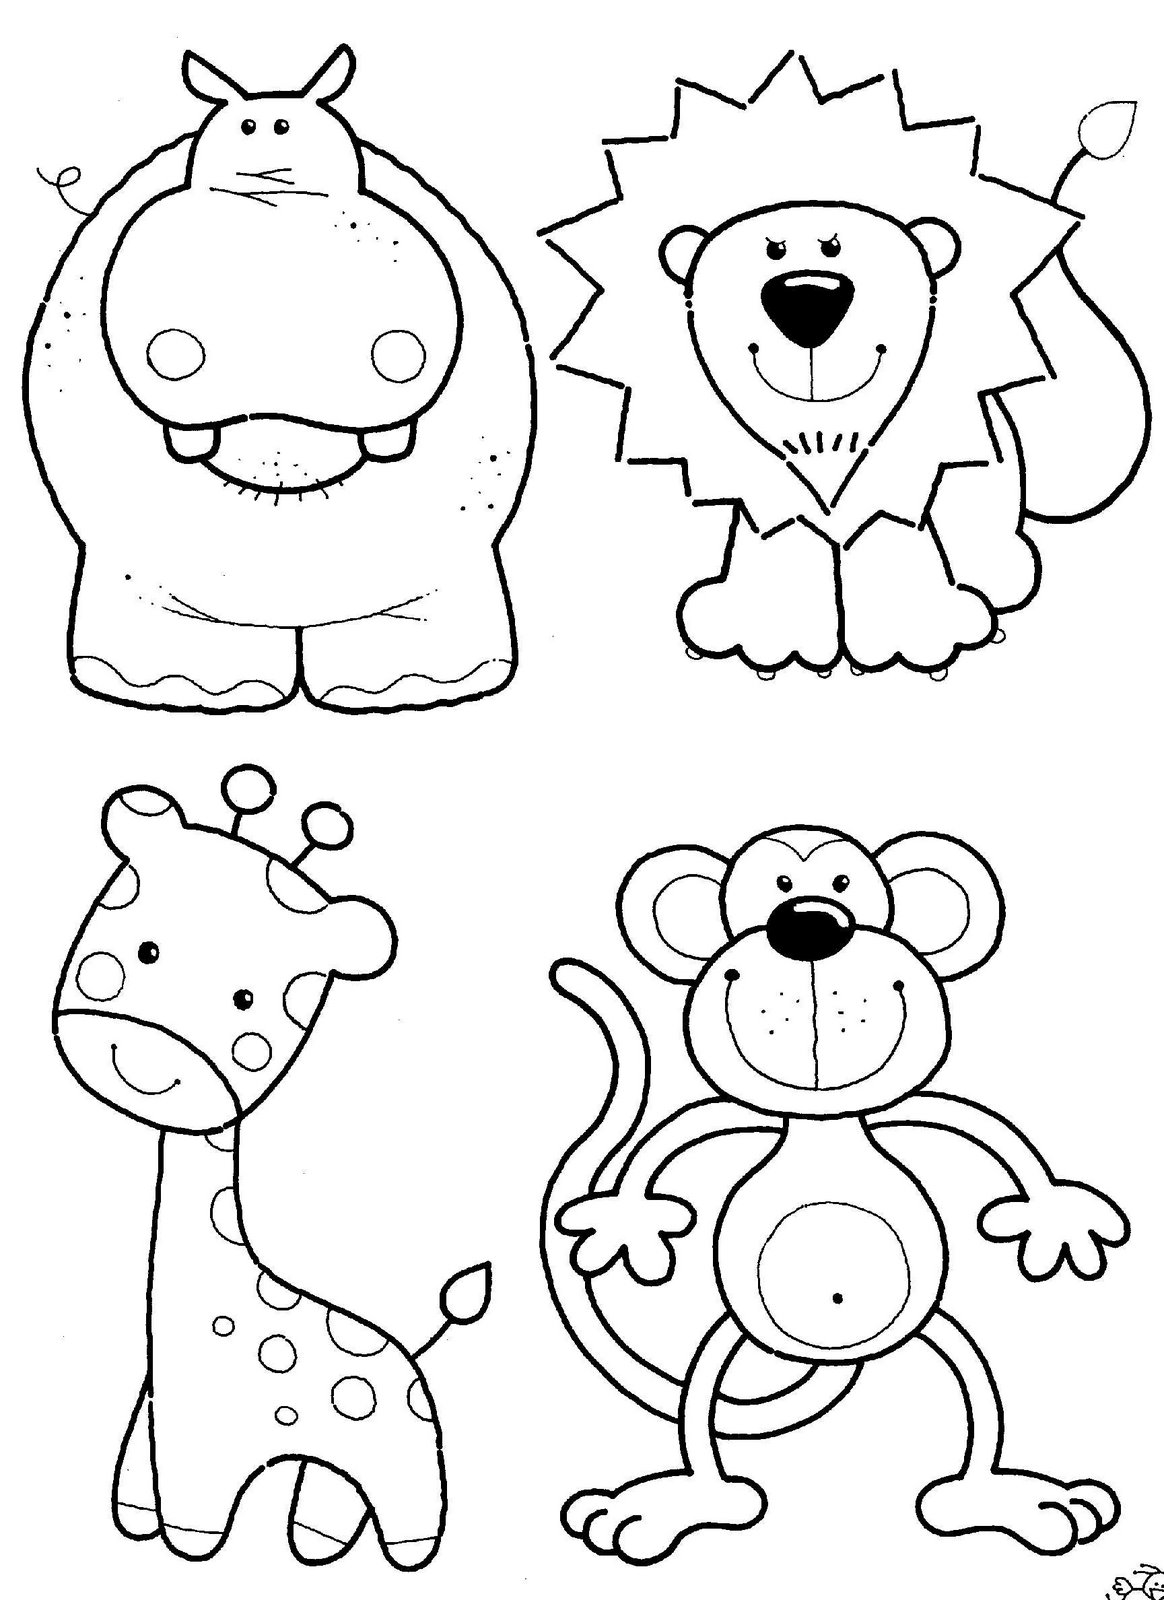 baby zoo animal coloring pages zoo babies bear woo jr kids activities pages zoo coloring baby animal